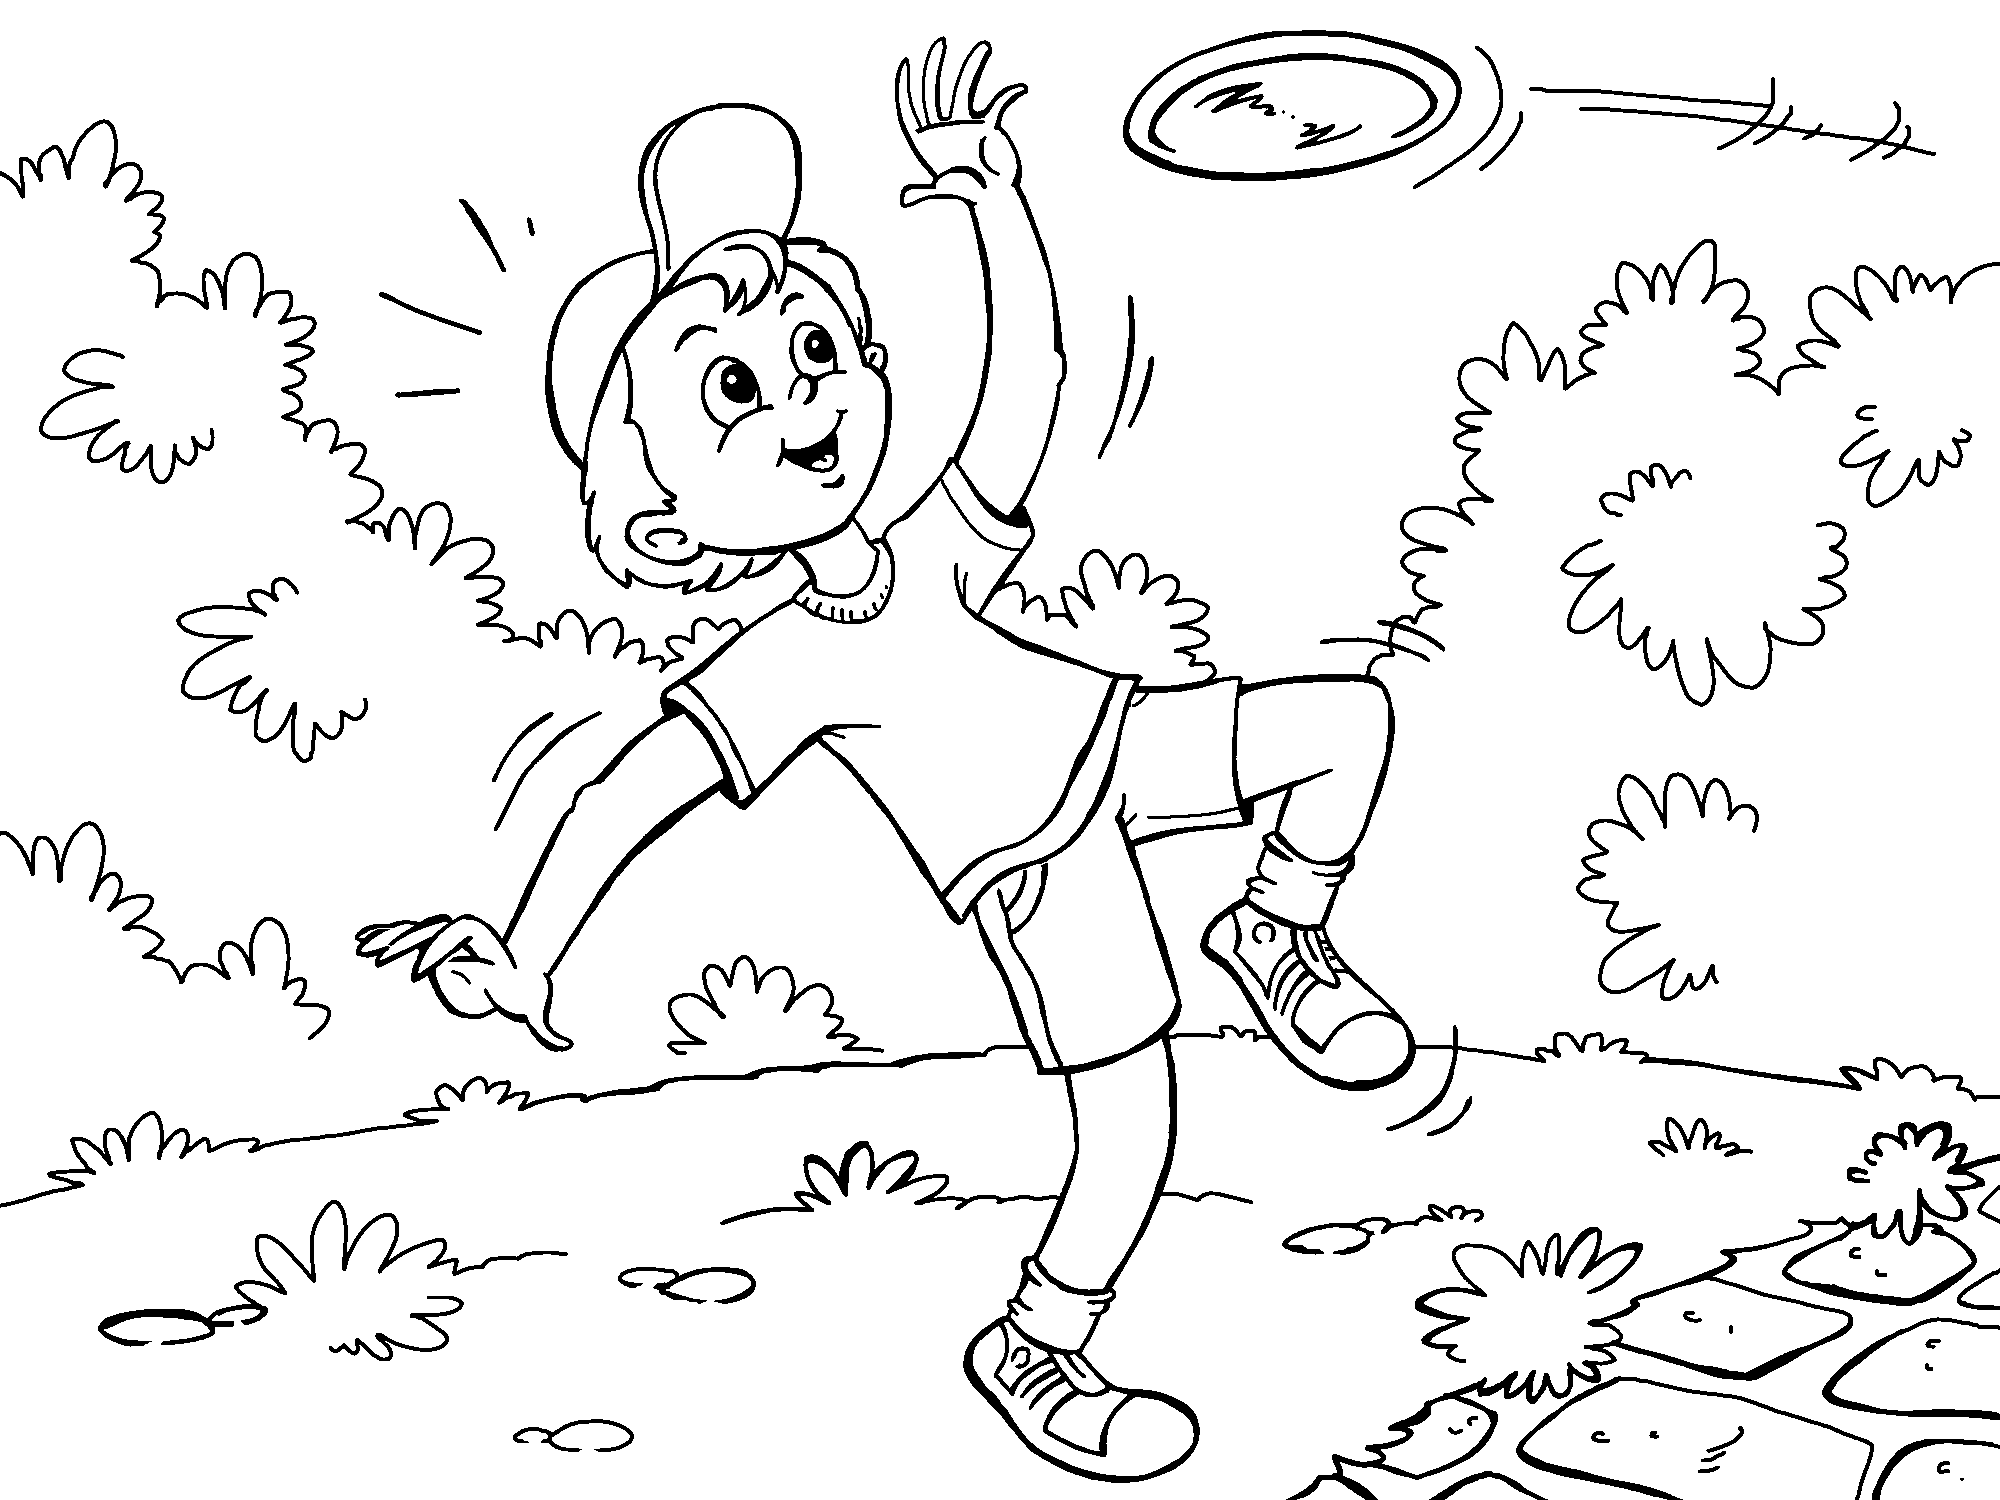 Boy Frisbee Coloring Page Online Coloring Pages Kids Playing Online Coloring